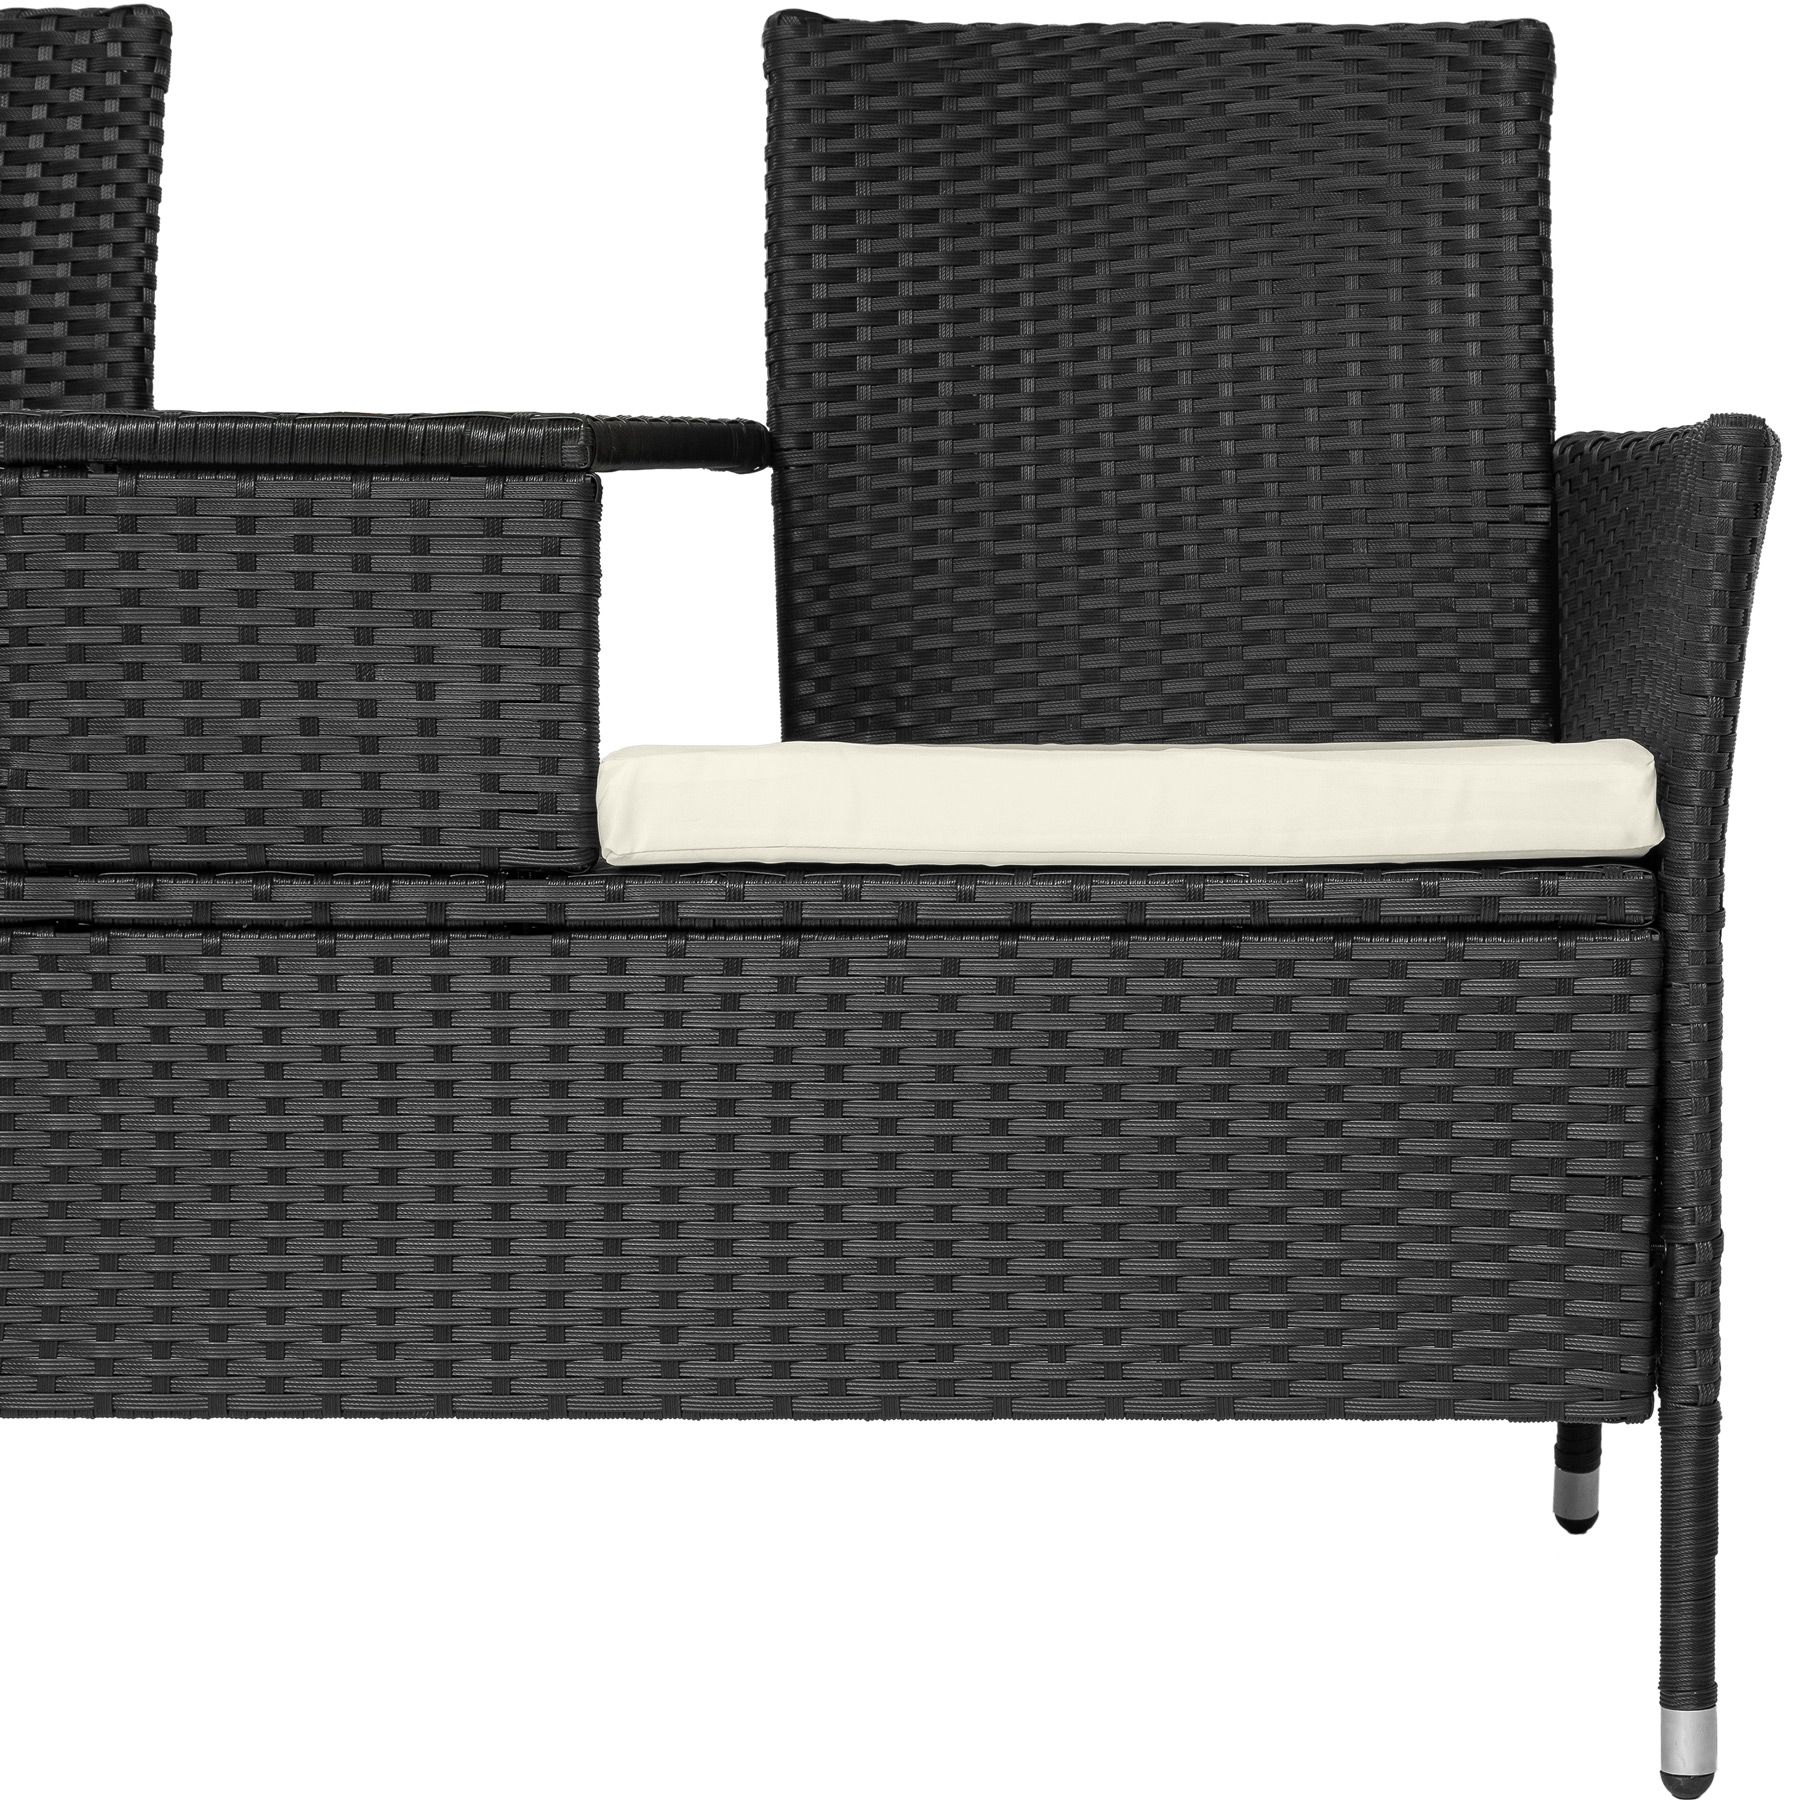 poly rattan gartenm bel sitzbank mit tisch lounge bank sofa gartenbank schwarz ebay. Black Bedroom Furniture Sets. Home Design Ideas